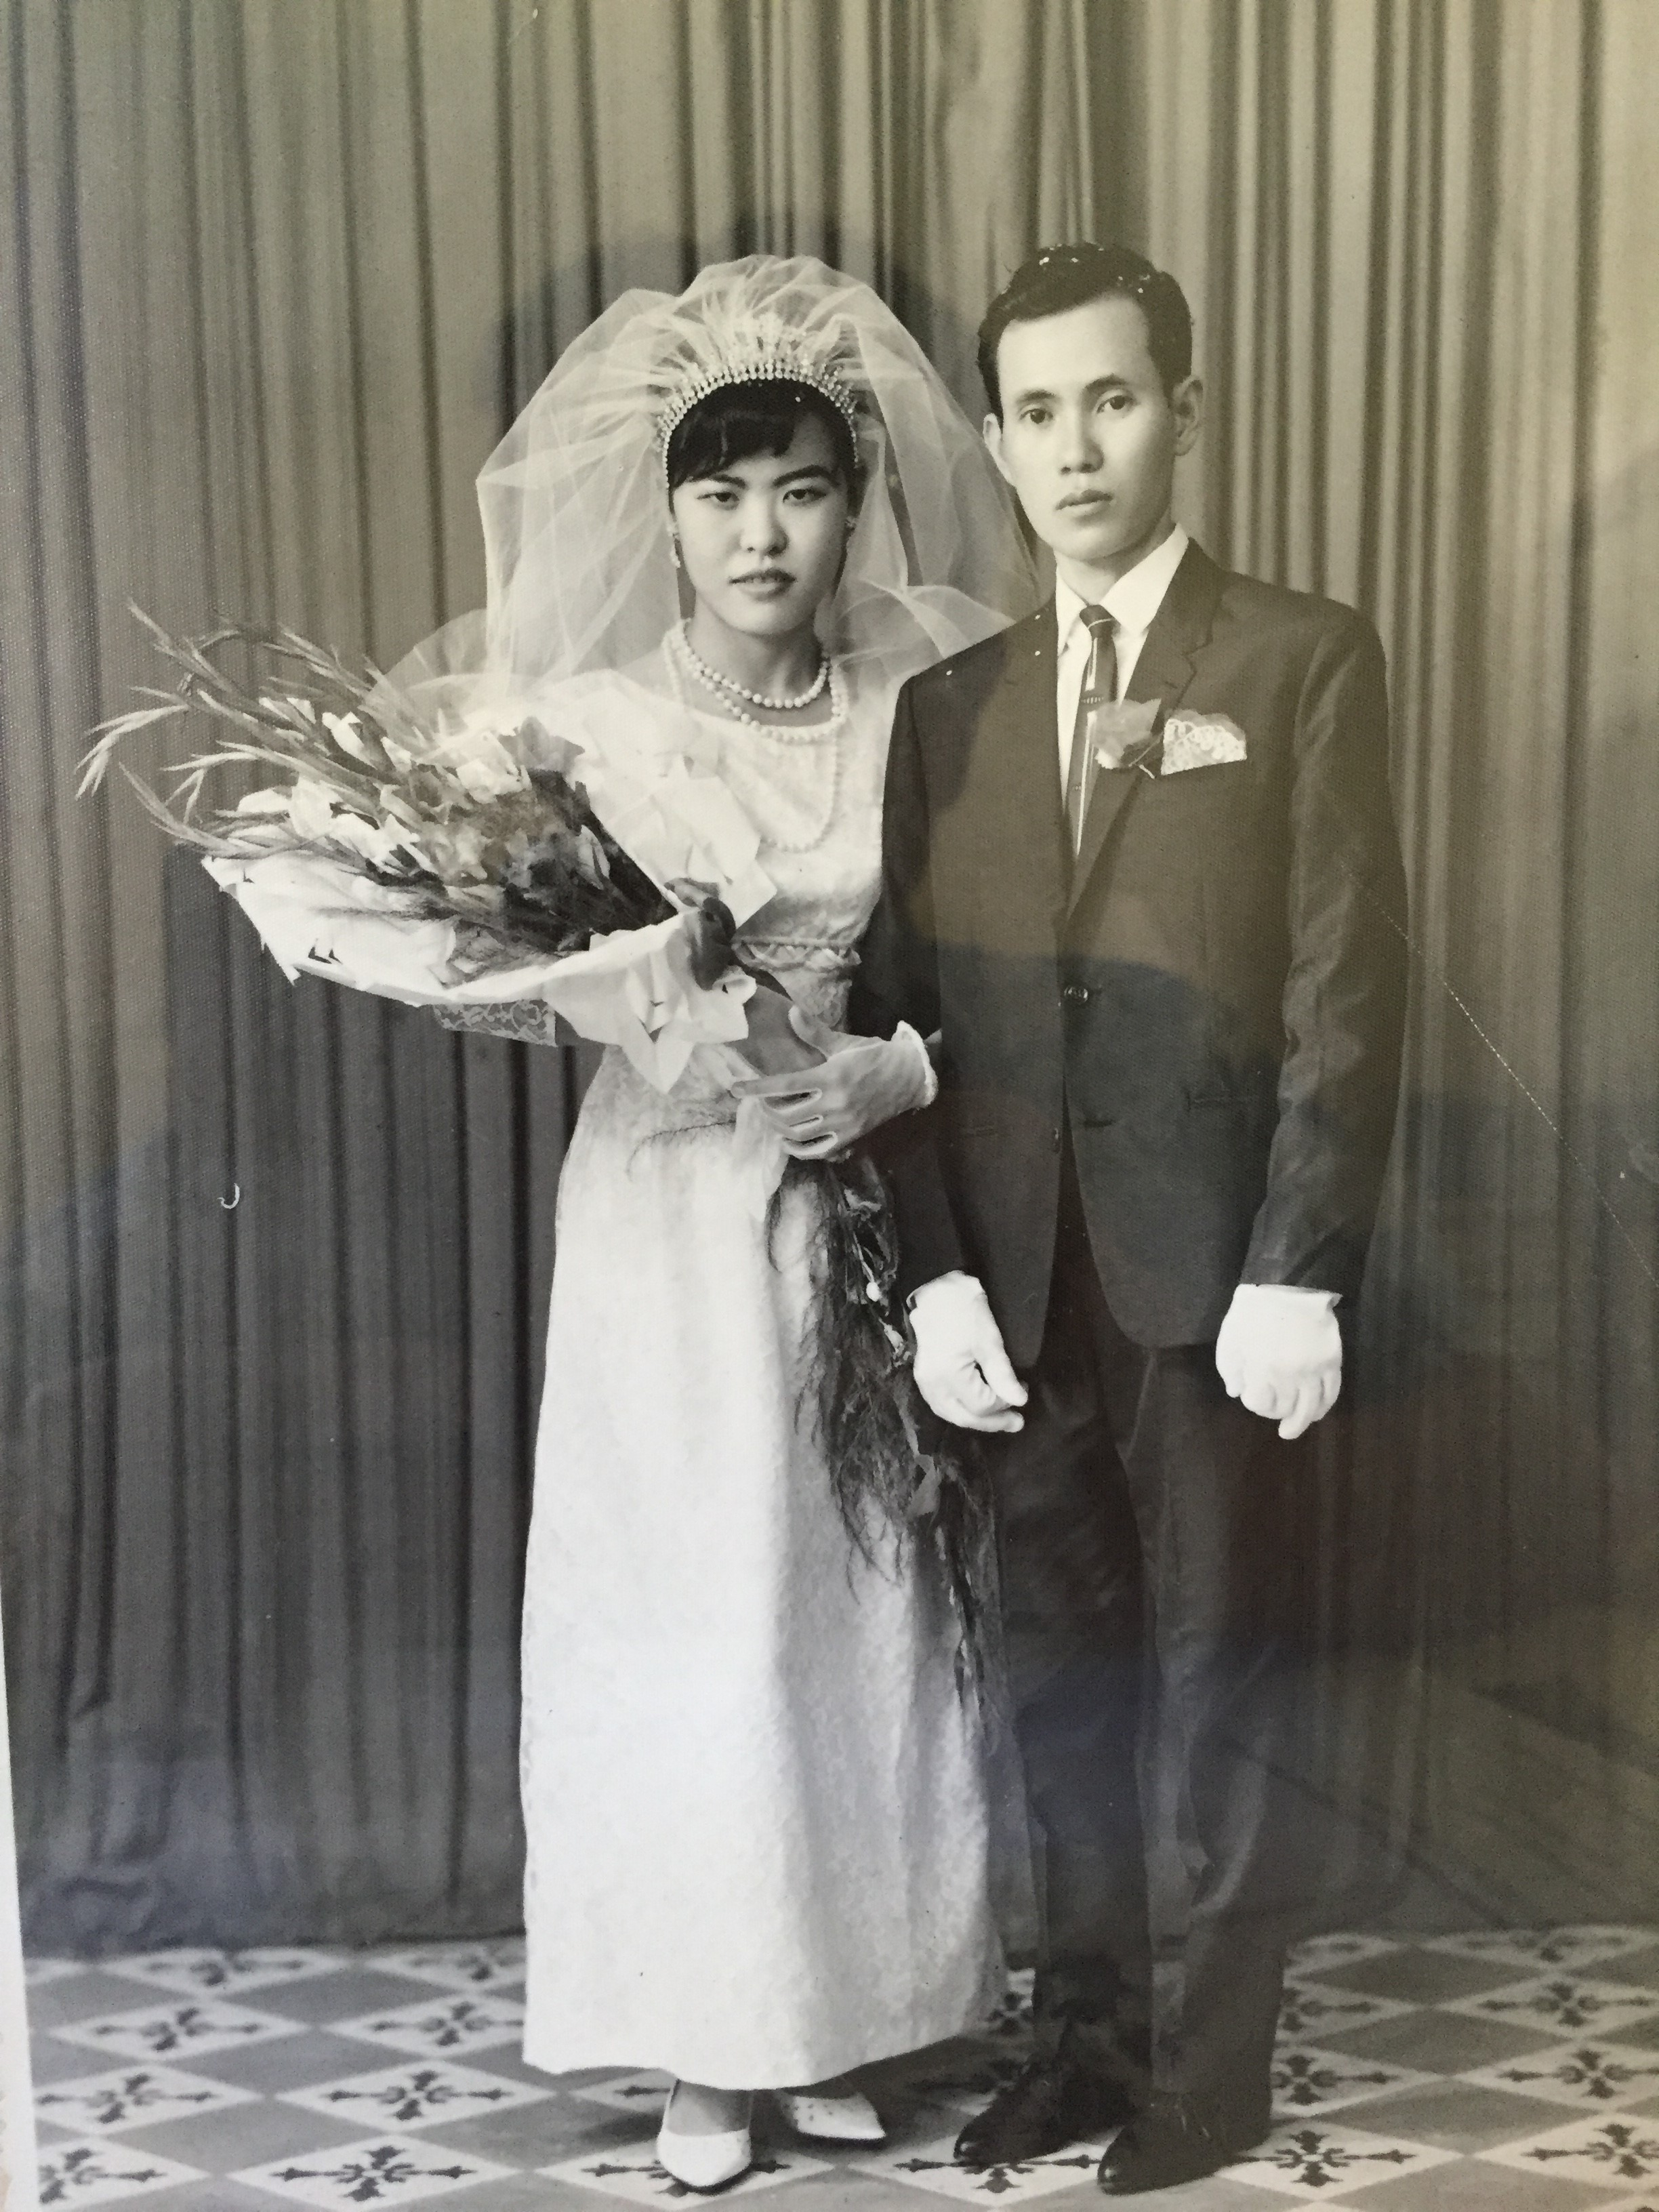 Lam and Ann were married in 1966. They met at the drugstore that Ann's father owned and where Lam worked.